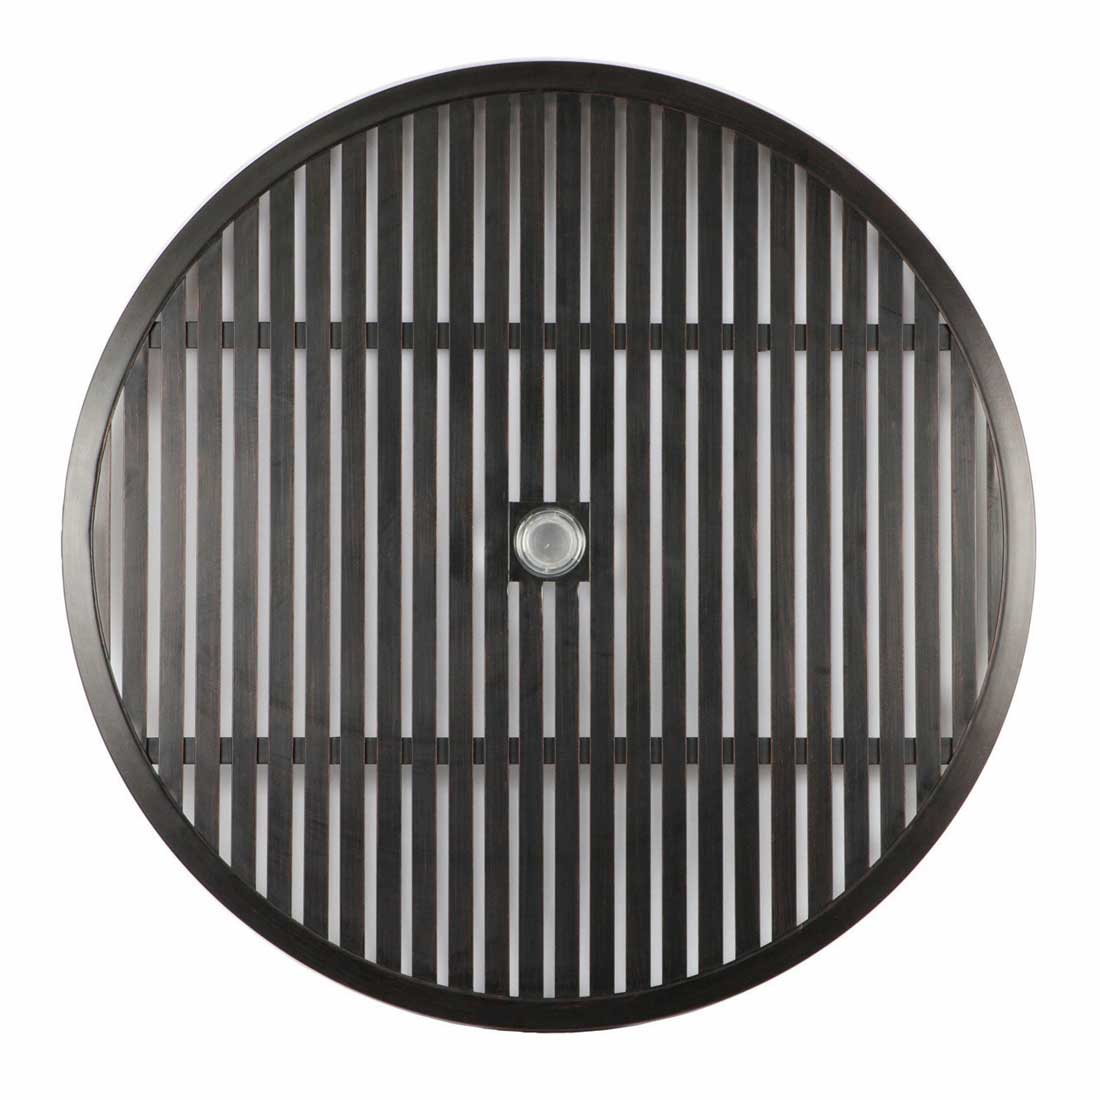 Cort 48 Round Slatted Table Top